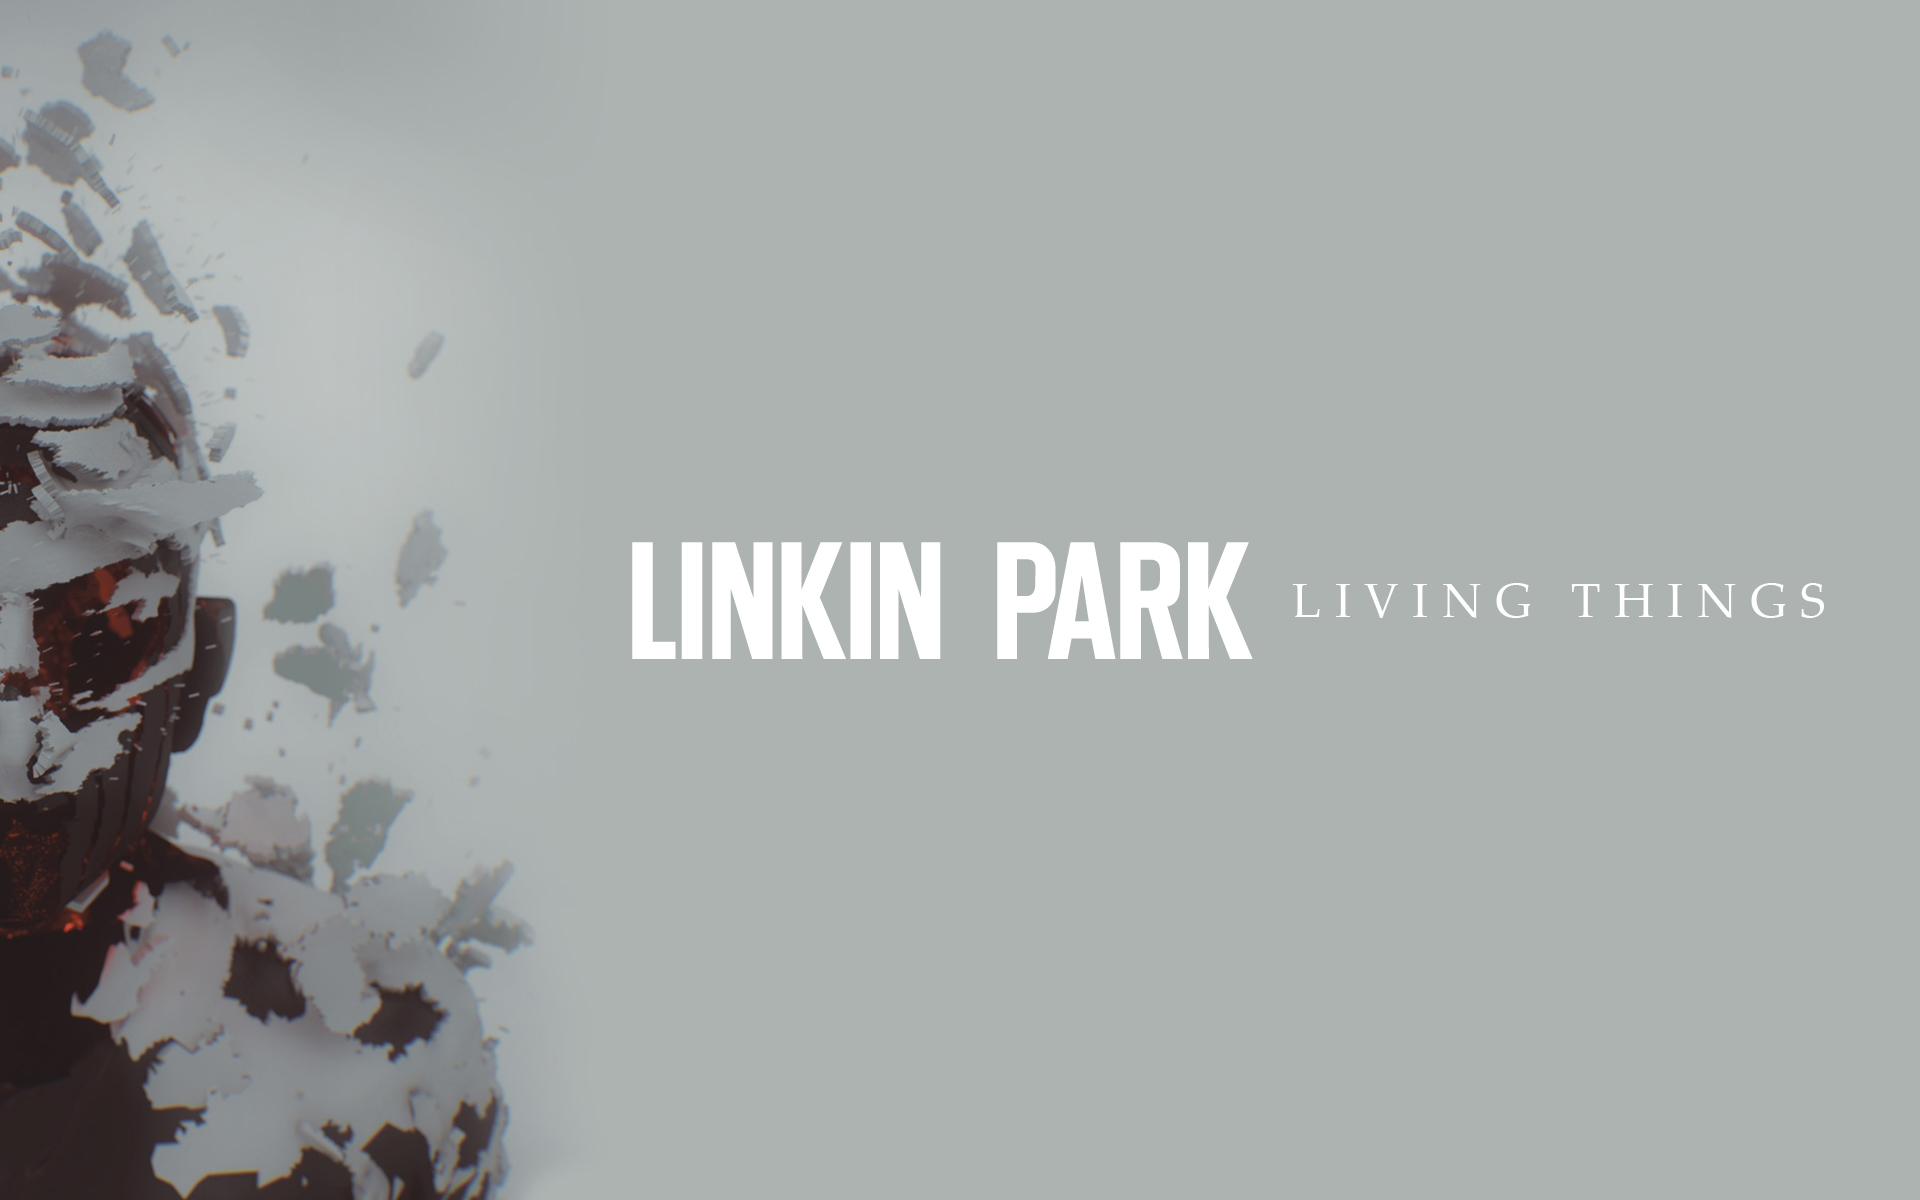 Living Things Linkin Park Album Wallpapers 1920x1200 317692